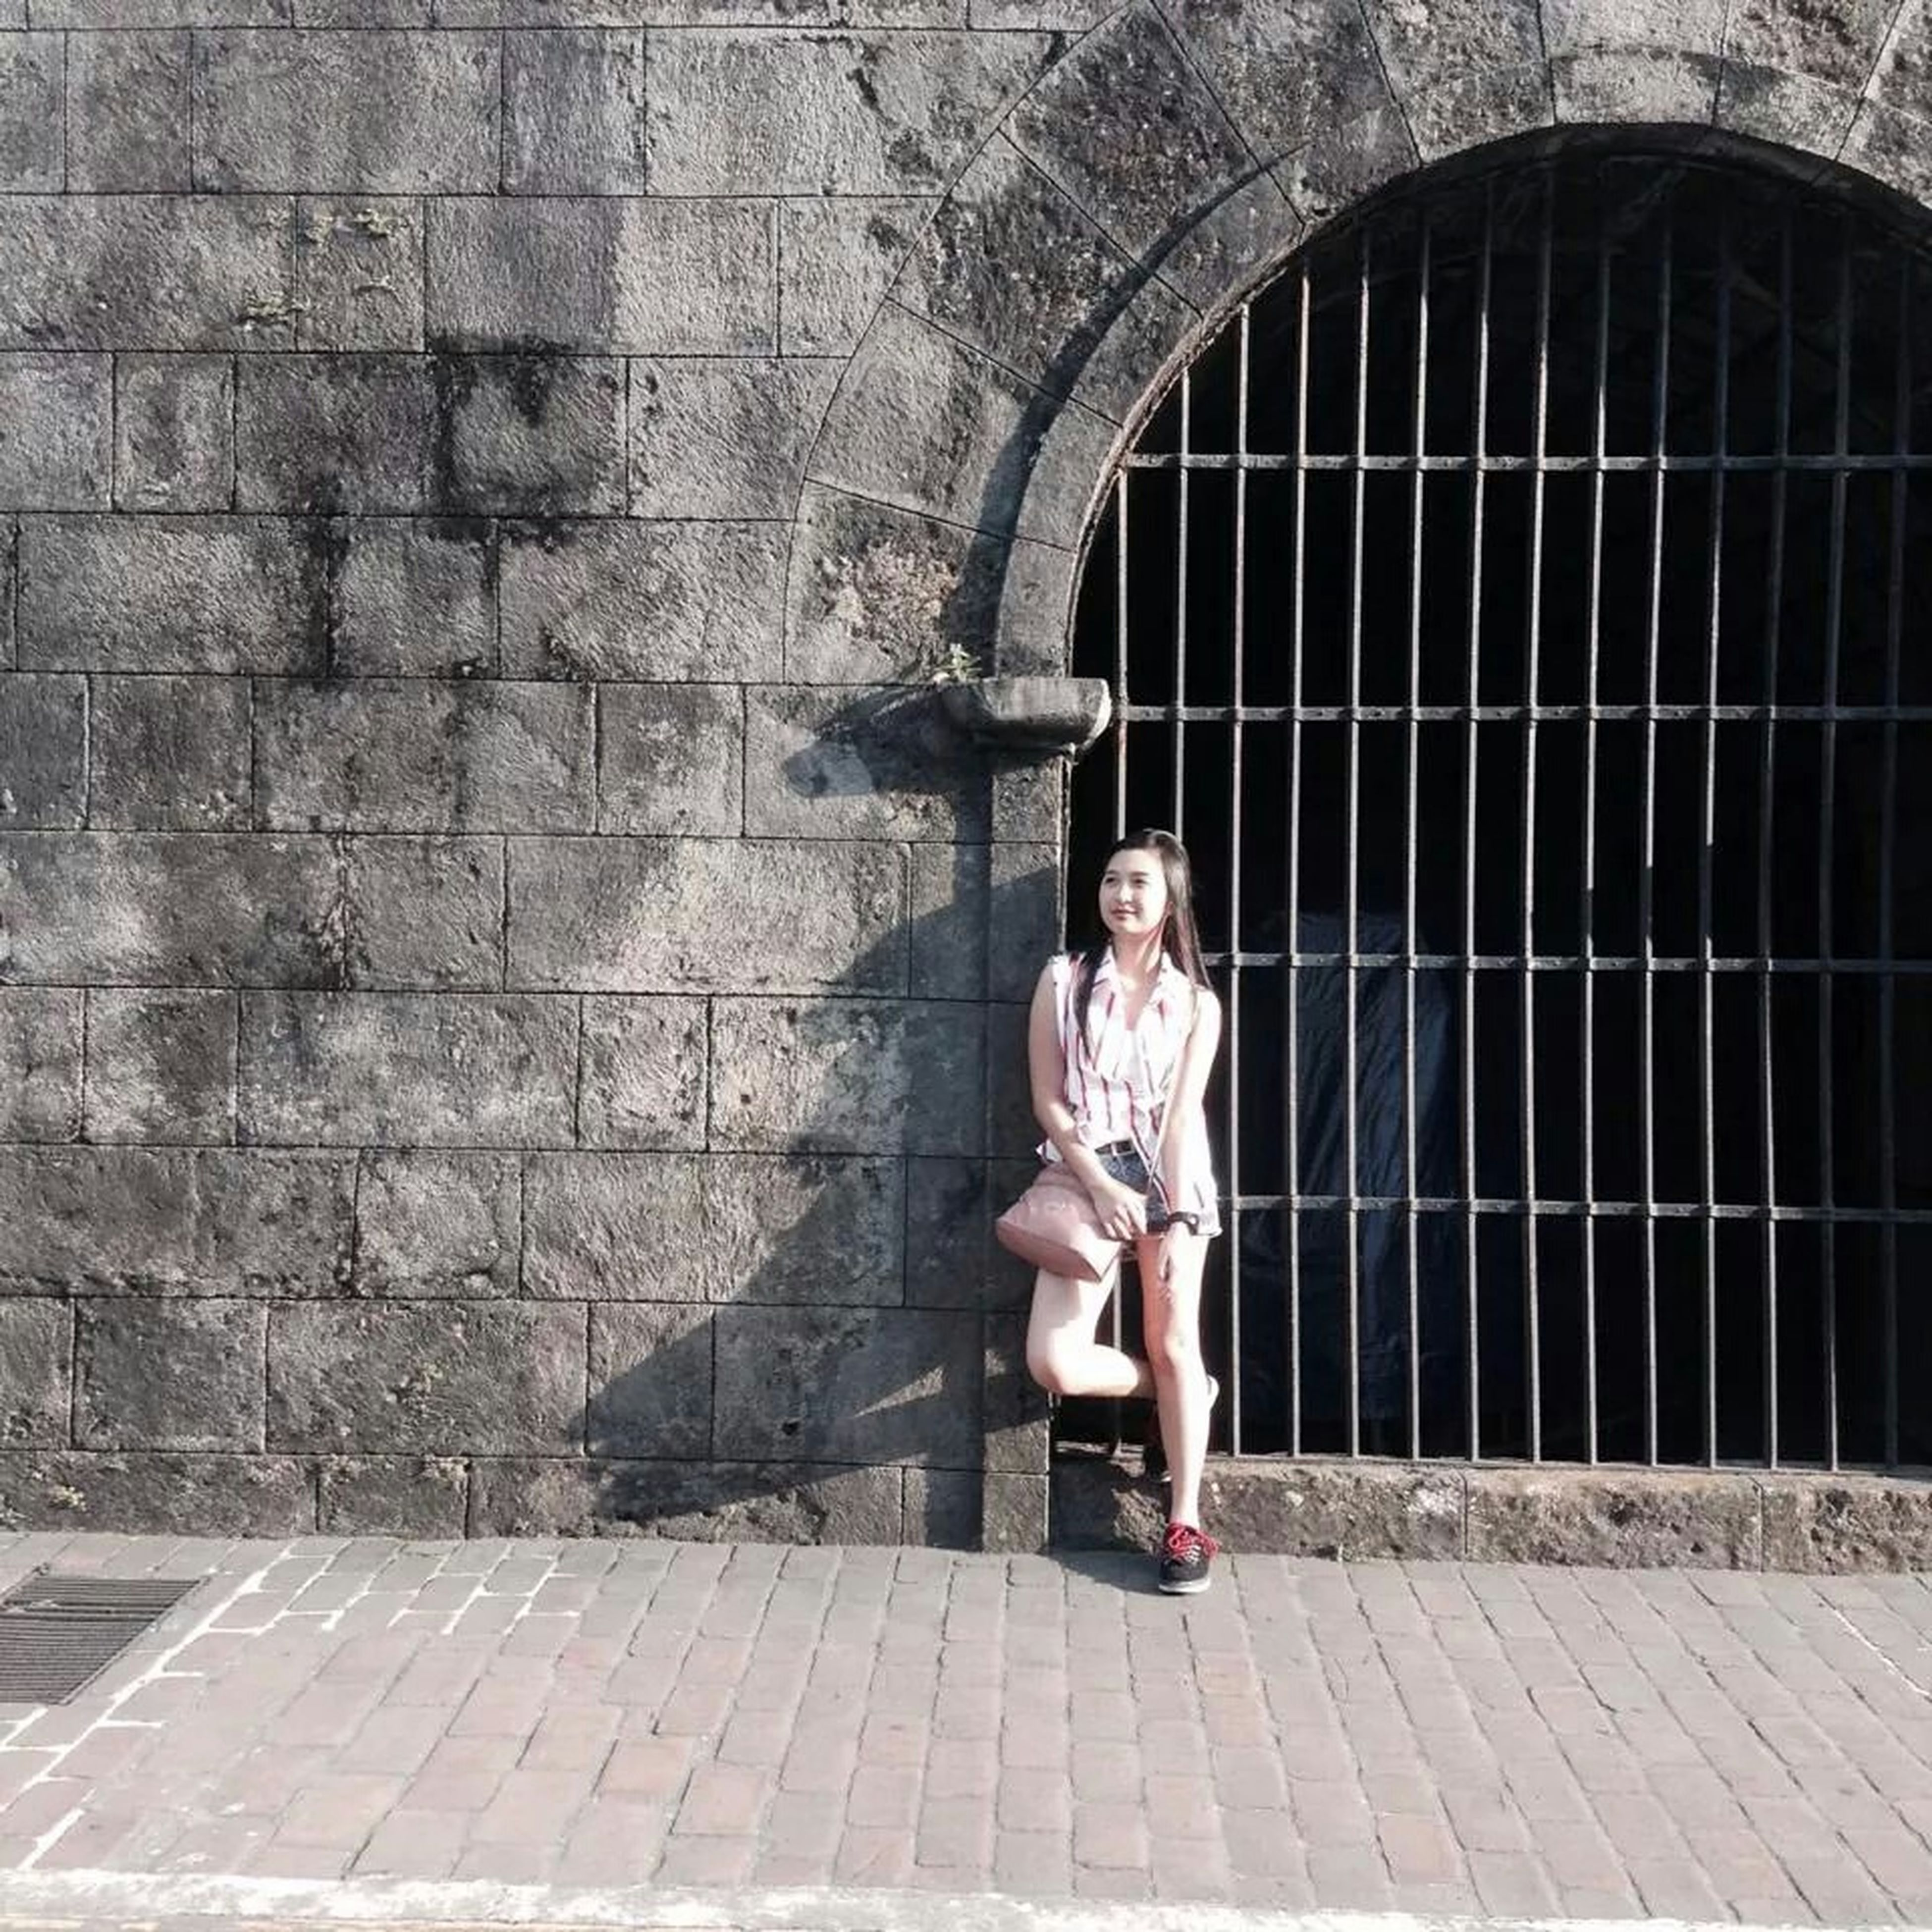 young adult, person, lifestyles, full length, young women, casual clothing, looking at camera, leisure activity, portrait, architecture, front view, built structure, standing, brick wall, wall - building feature, smiling, building exterior